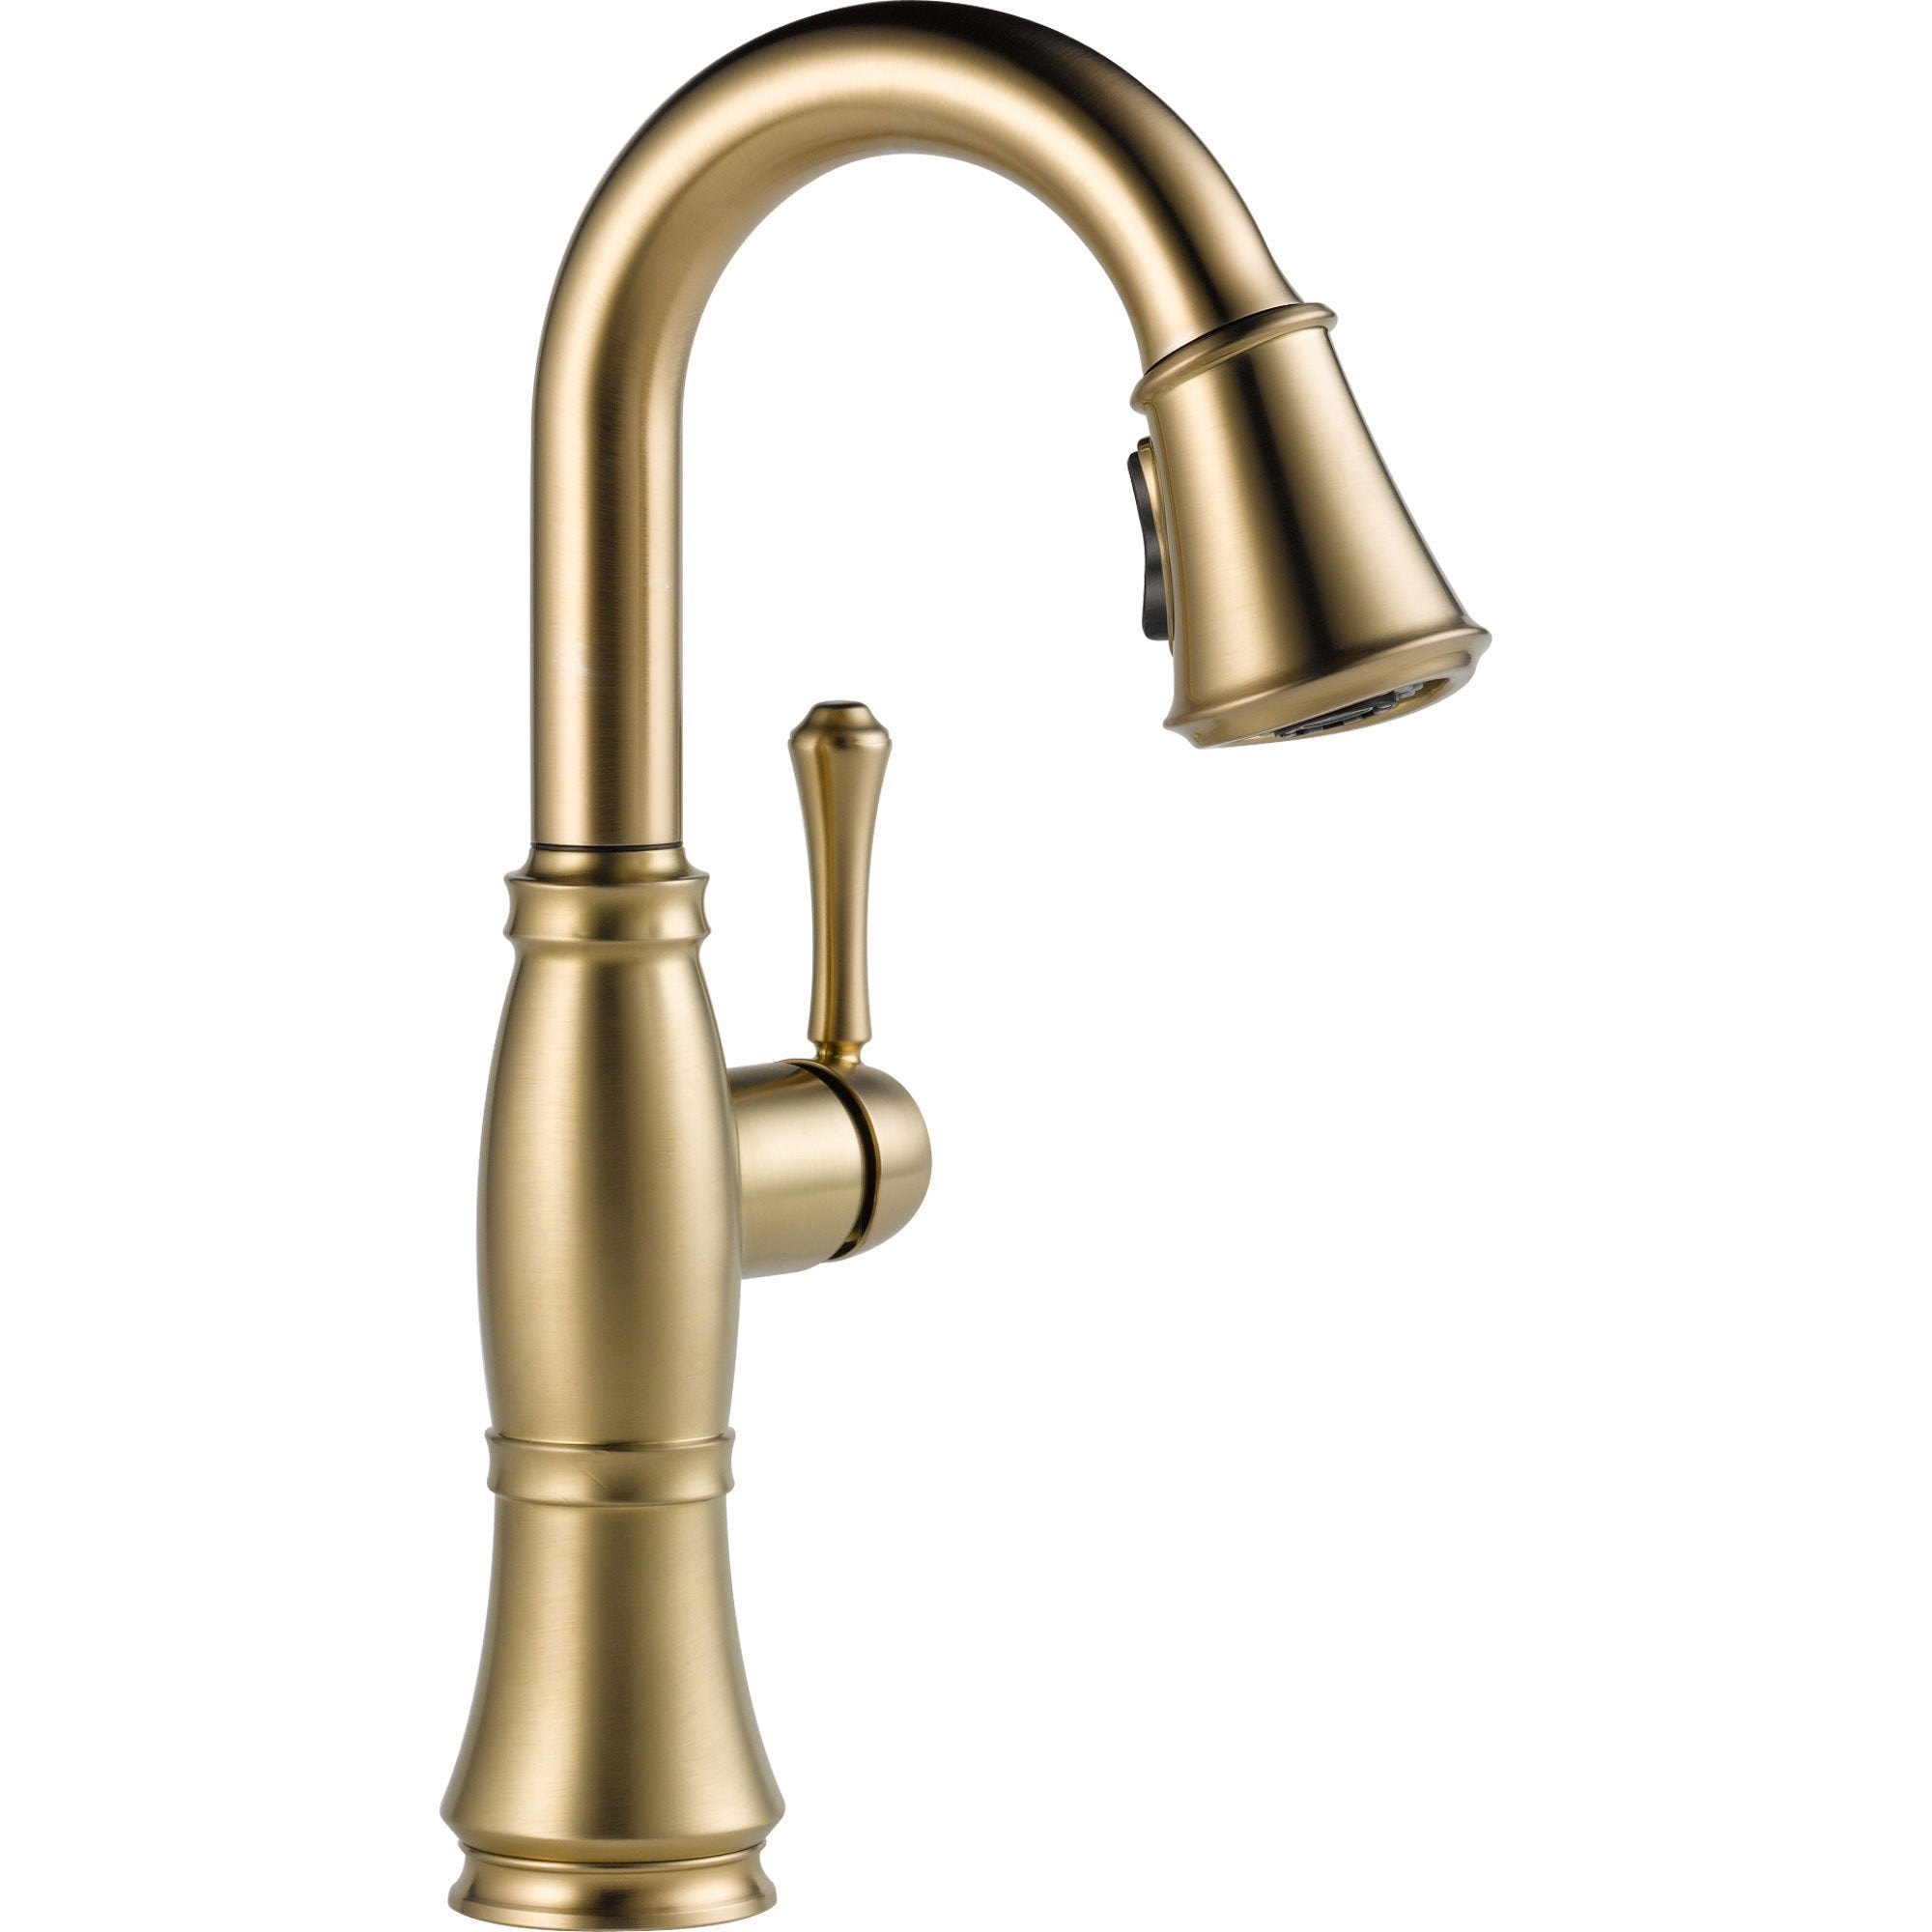 Delta Cassidy Champagne Bronze Single Handle Pull-Down Sprayer Bar Faucet 579598